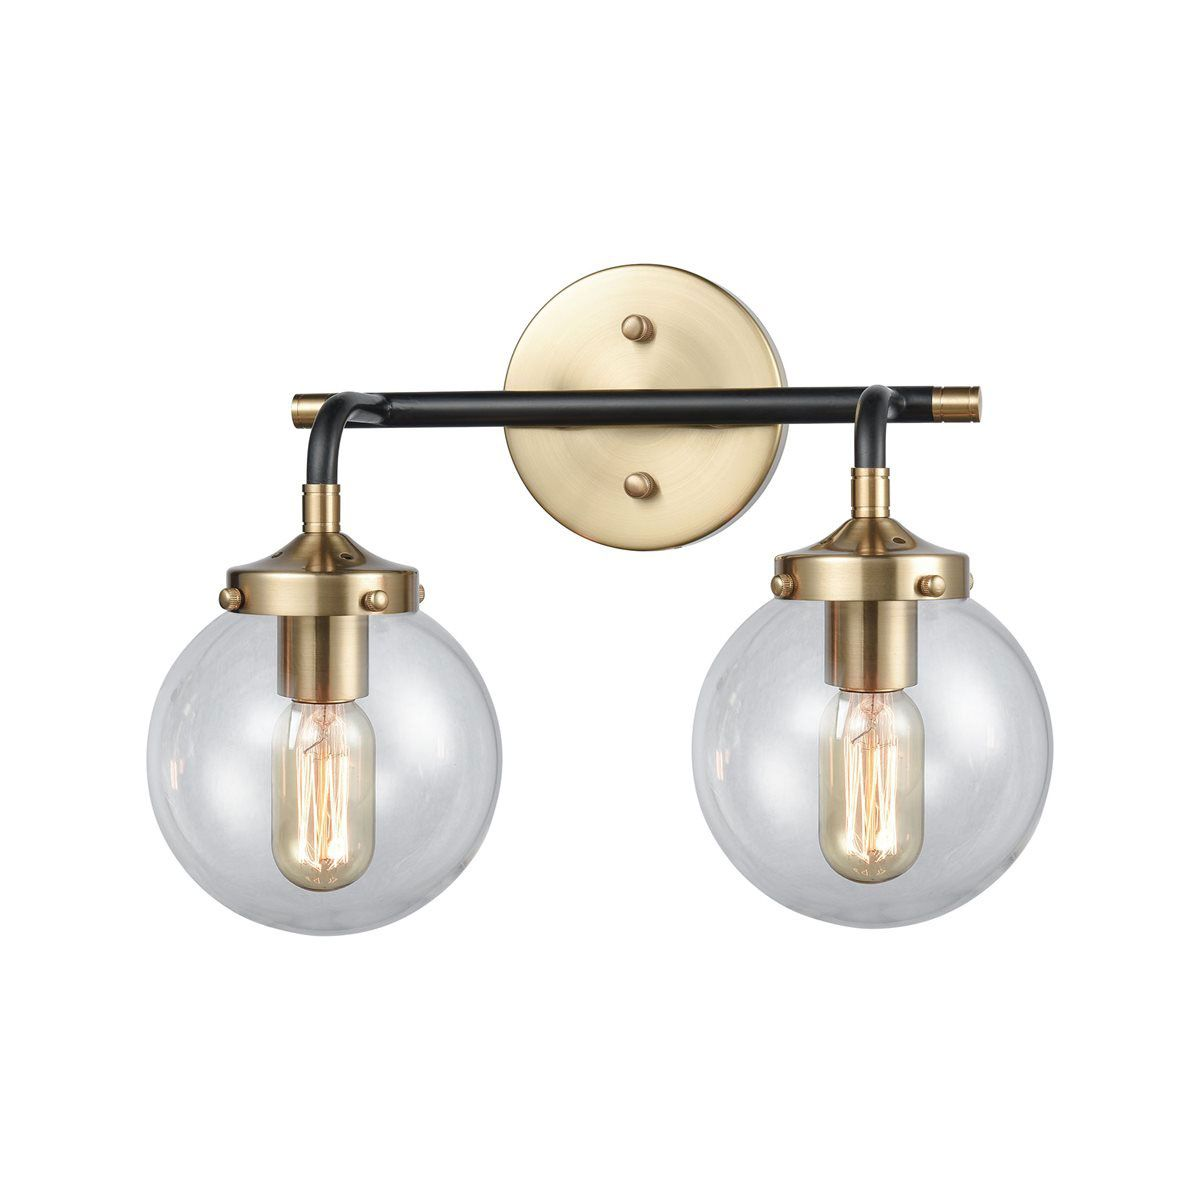 Boudreaux Bathroom Vanity Light By Elk Lighting 14427 2 Vanity